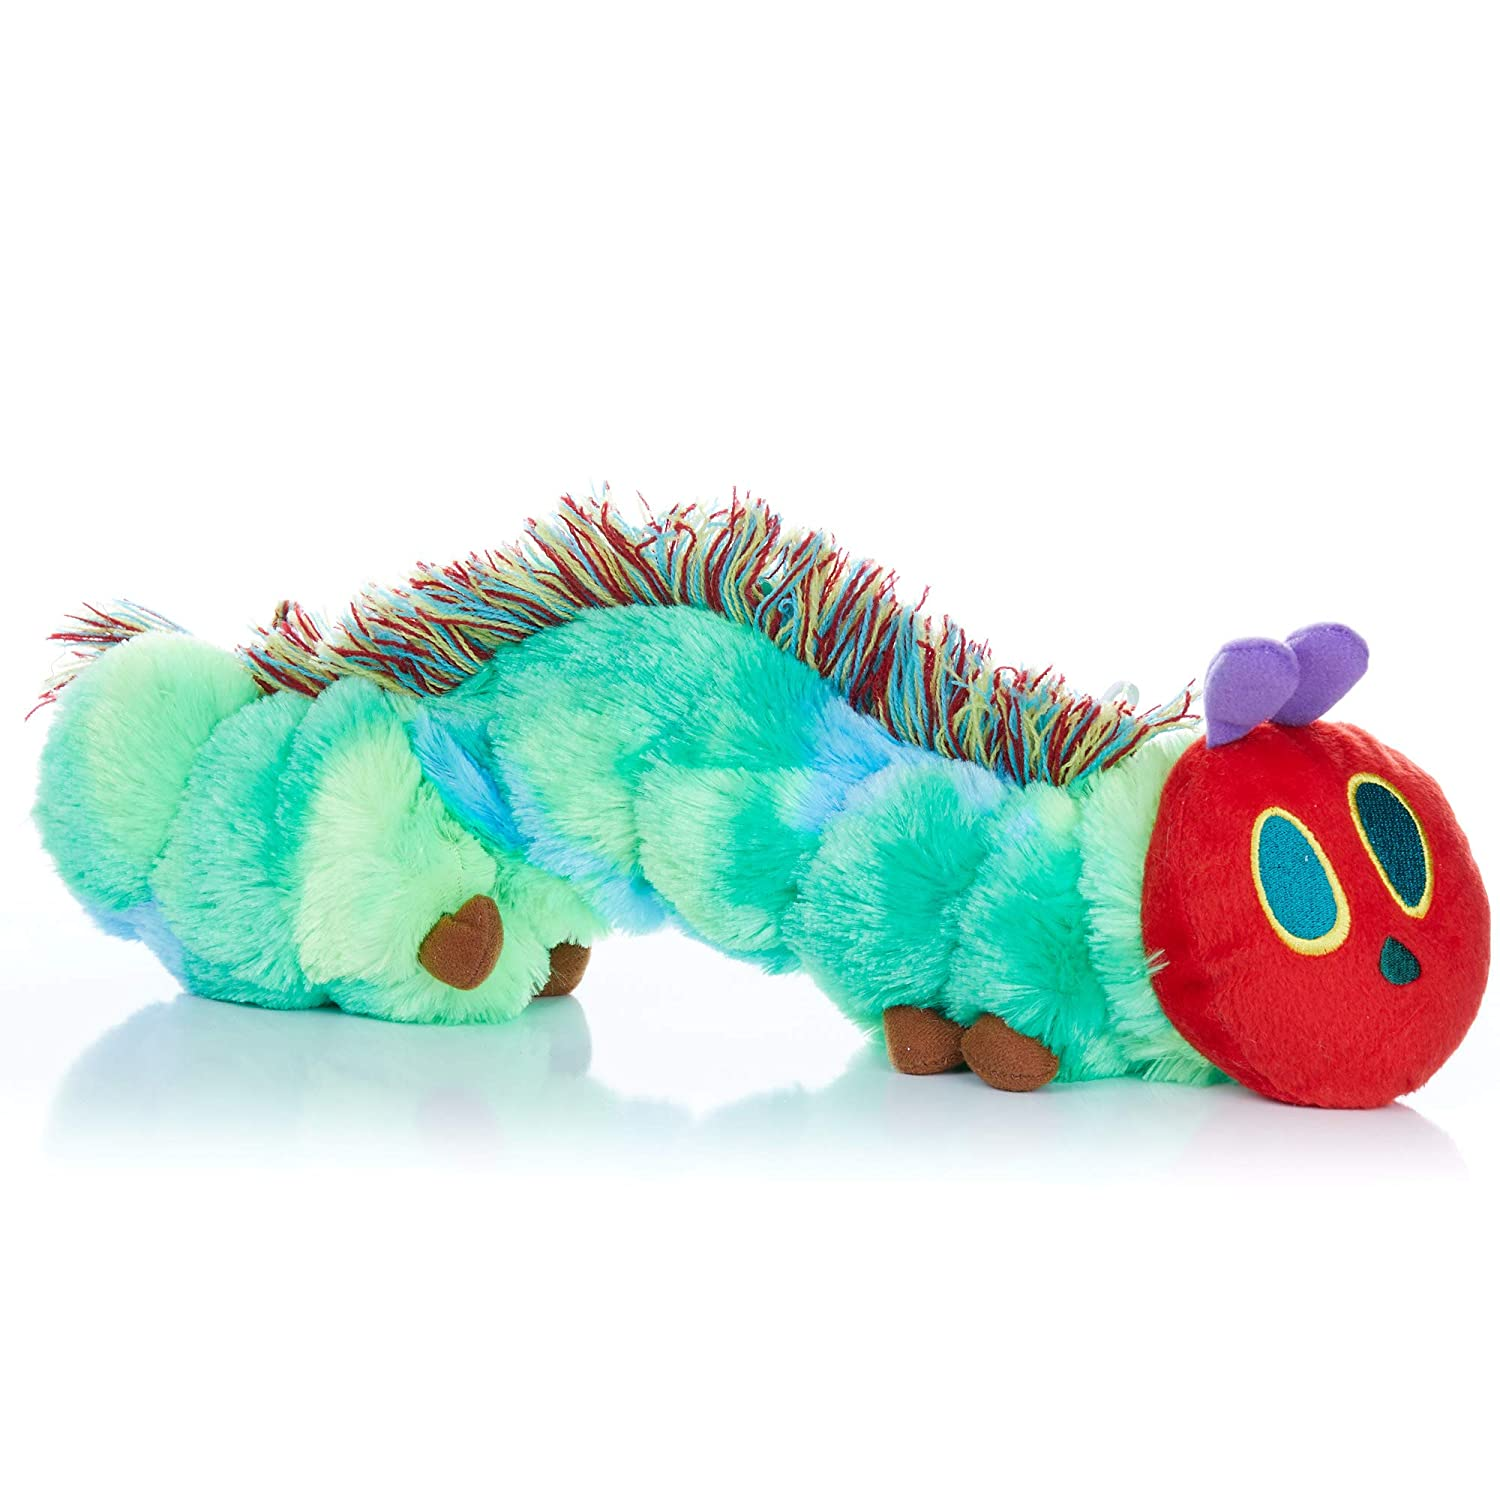 KIDS PREFERRED World of Eric Carle, The Very Hungry Caterpillar Butterfly Reversible Stuffed Animal Plush Toy, 13 Inches, Green, Approx 16